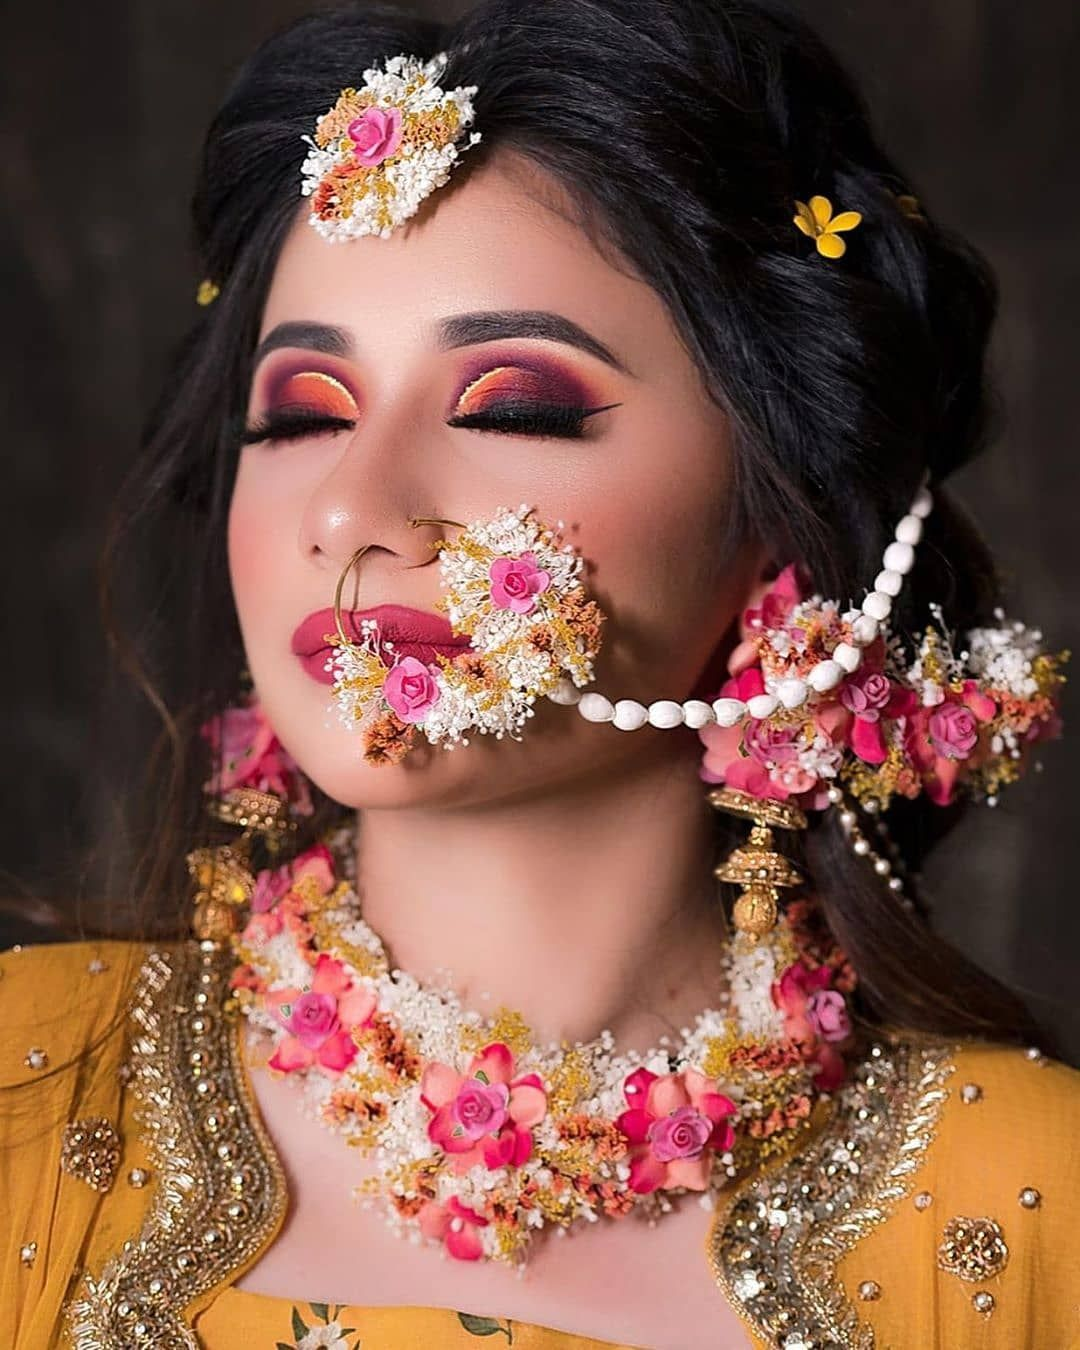 Where To Shop Floral Jewellery In Delhi? Flower